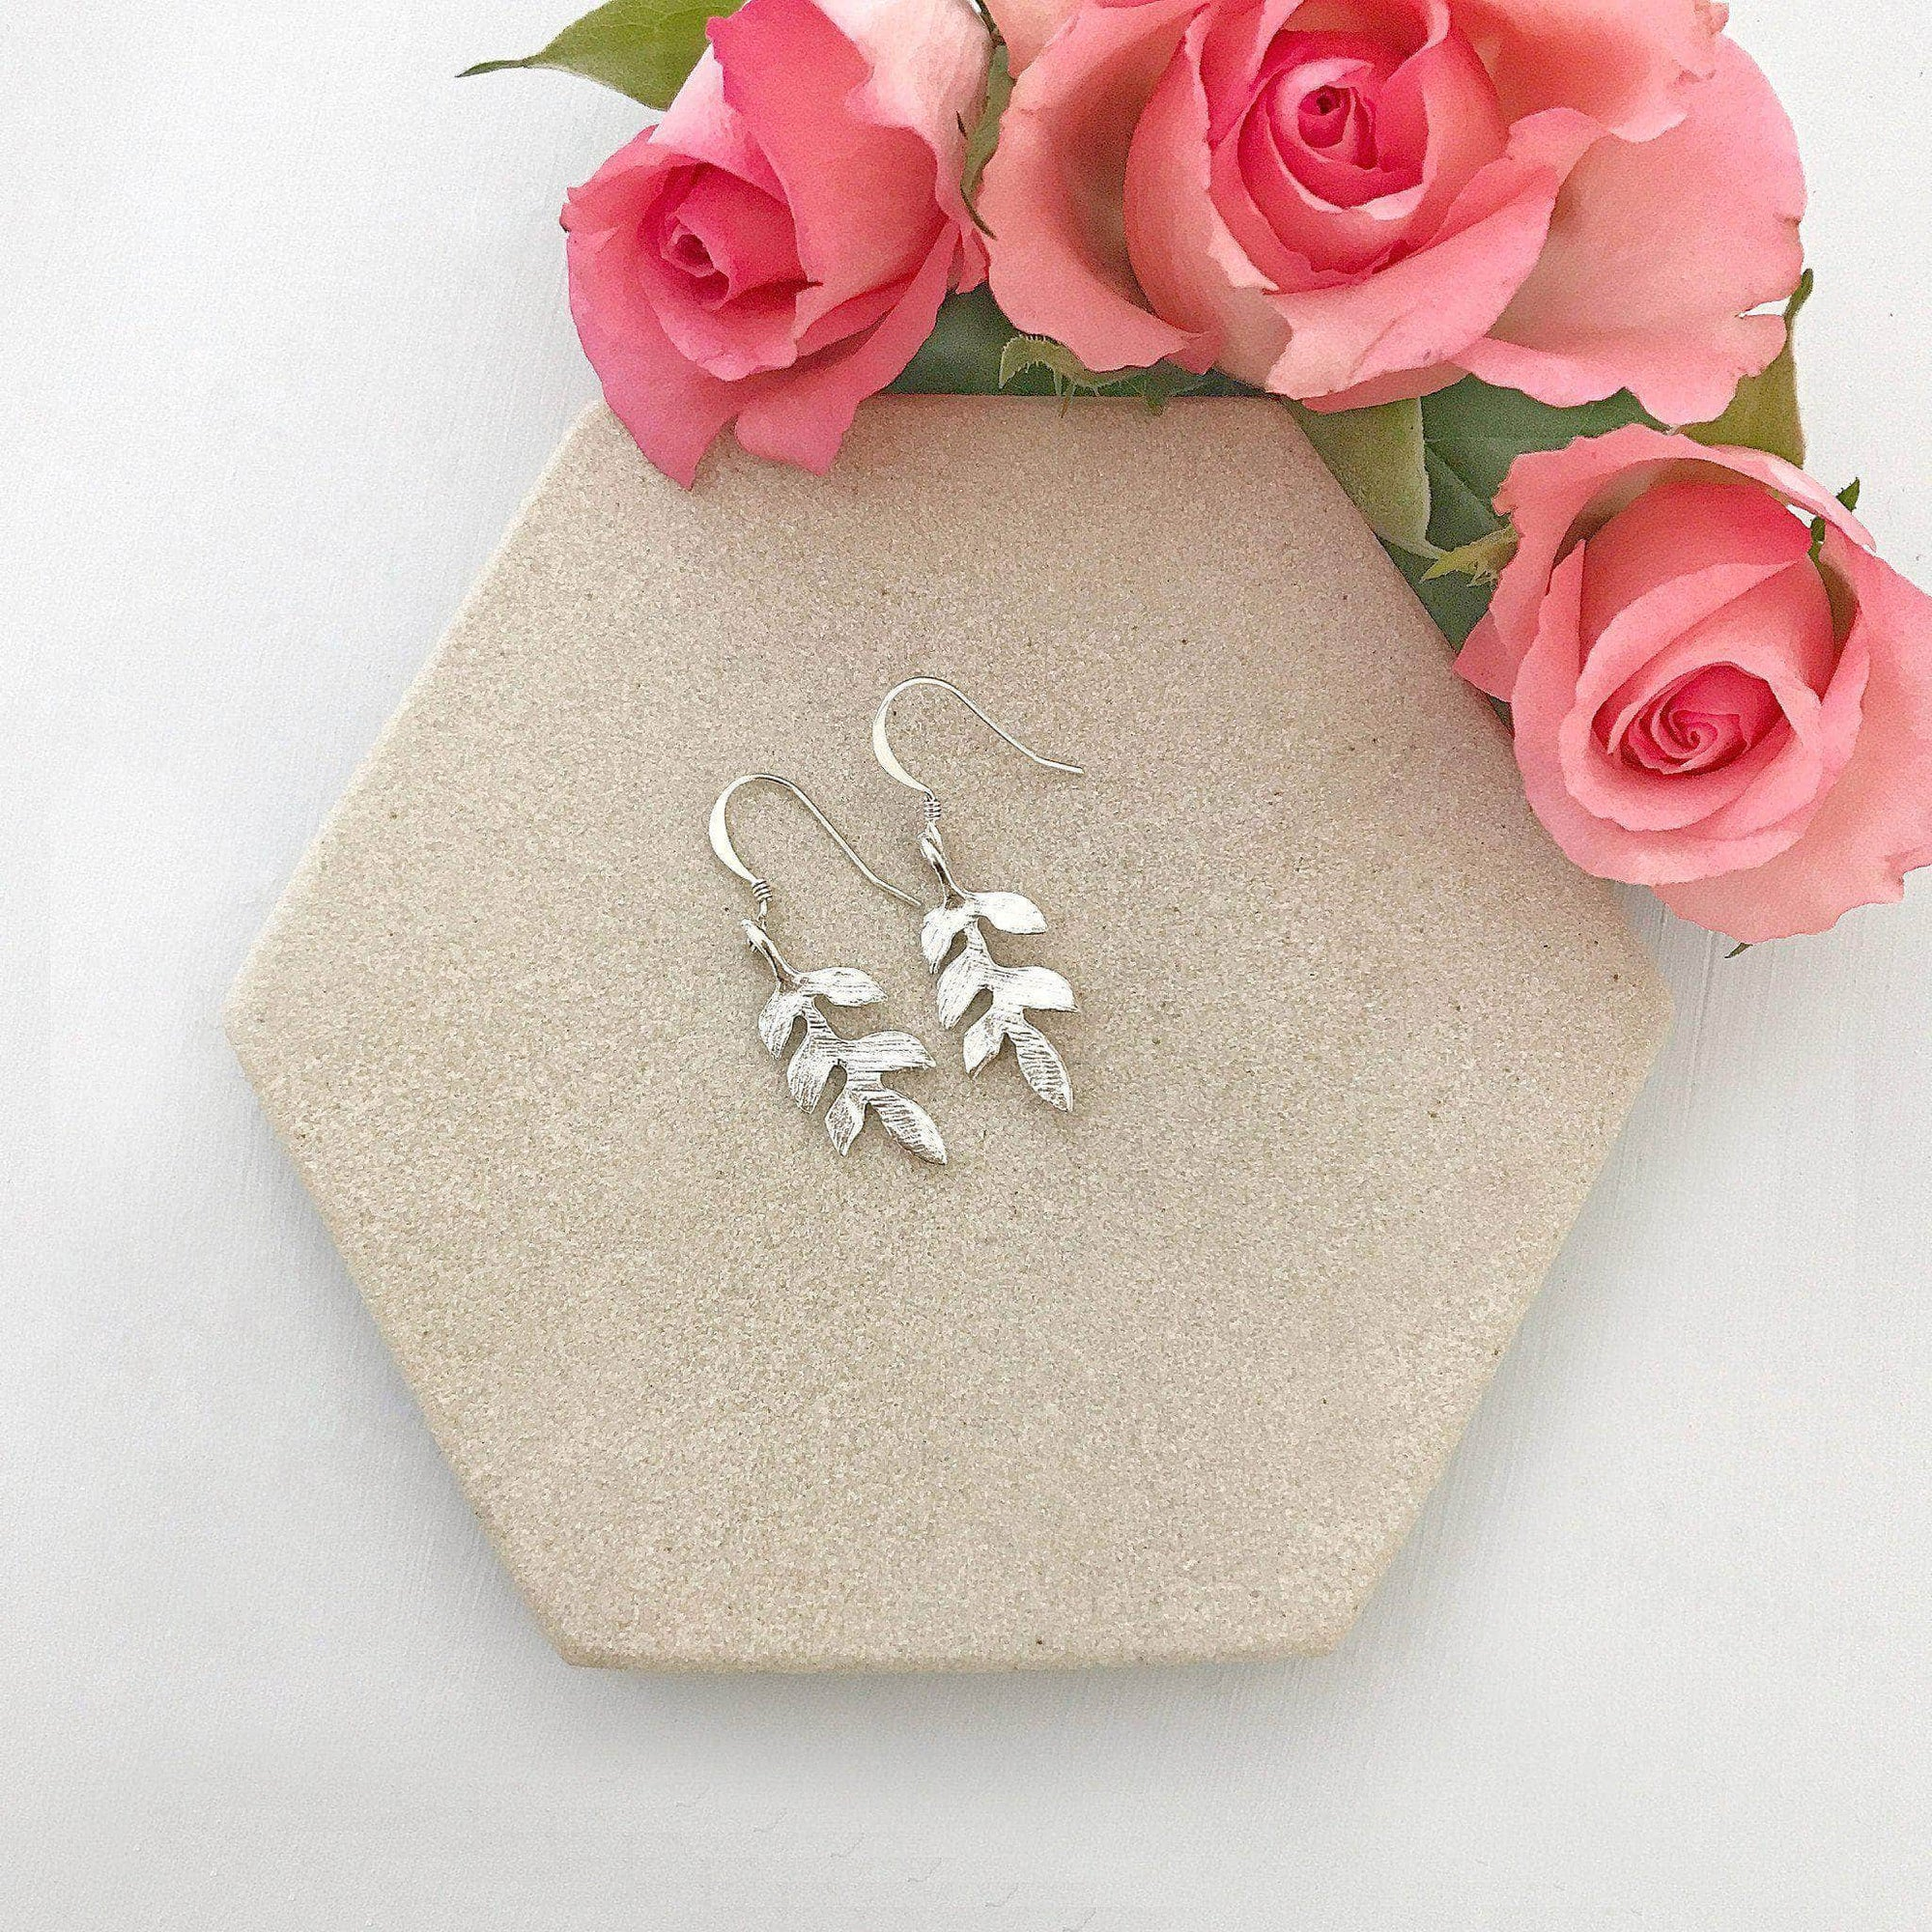 Wedding Earring Silver Silver leaf earrings for wedding- 'Avani'